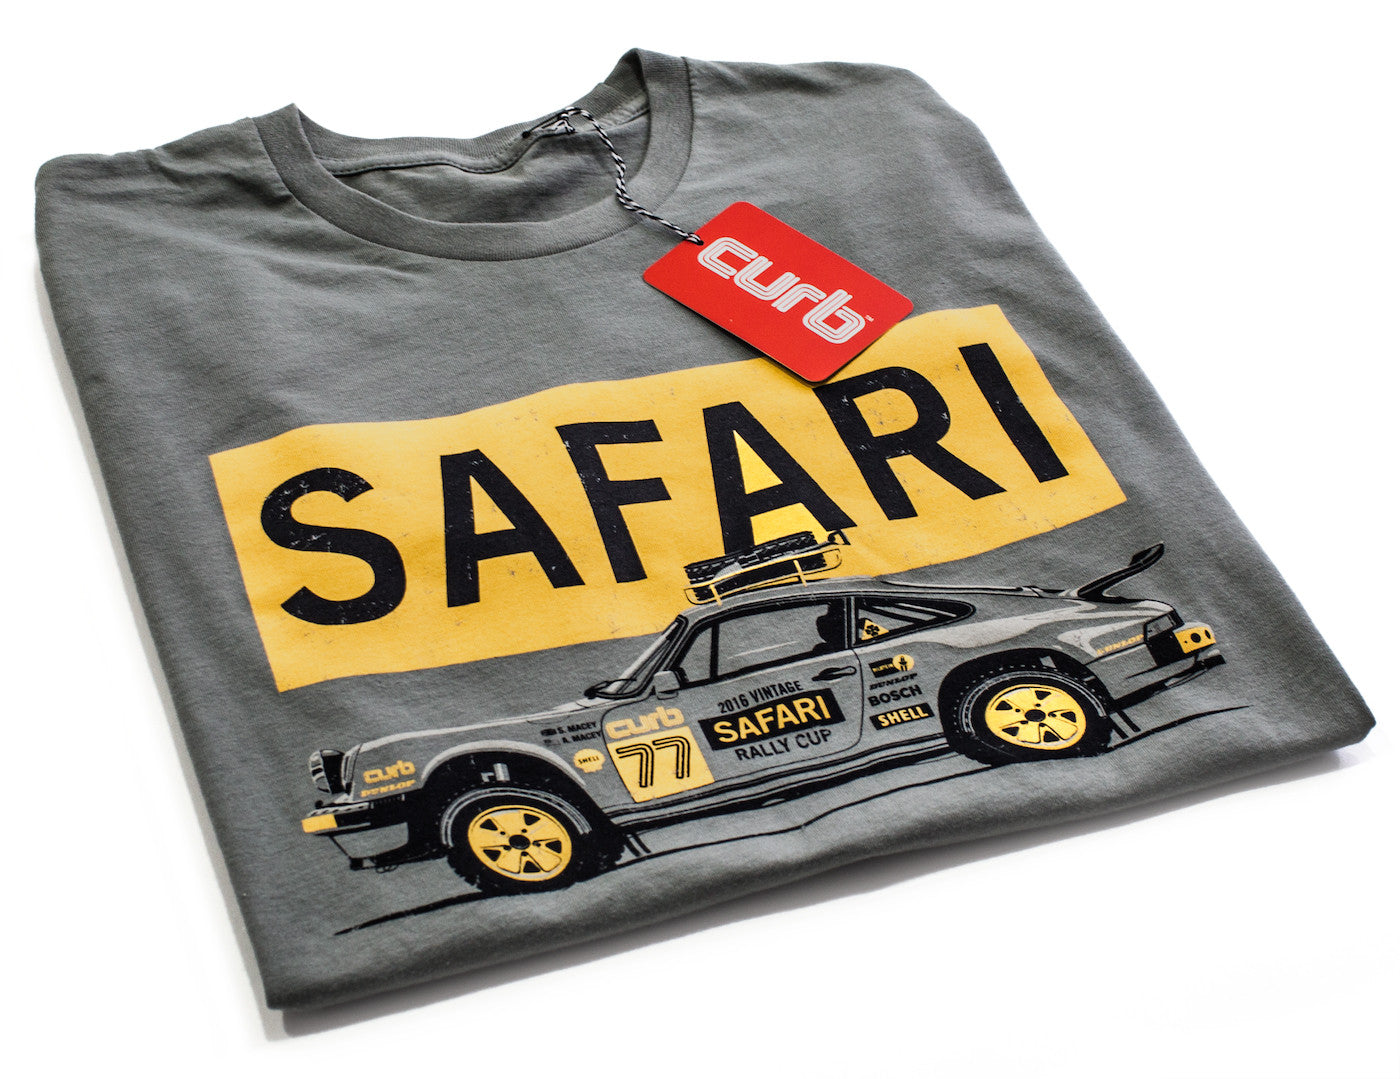 Curb 911 SAFARI